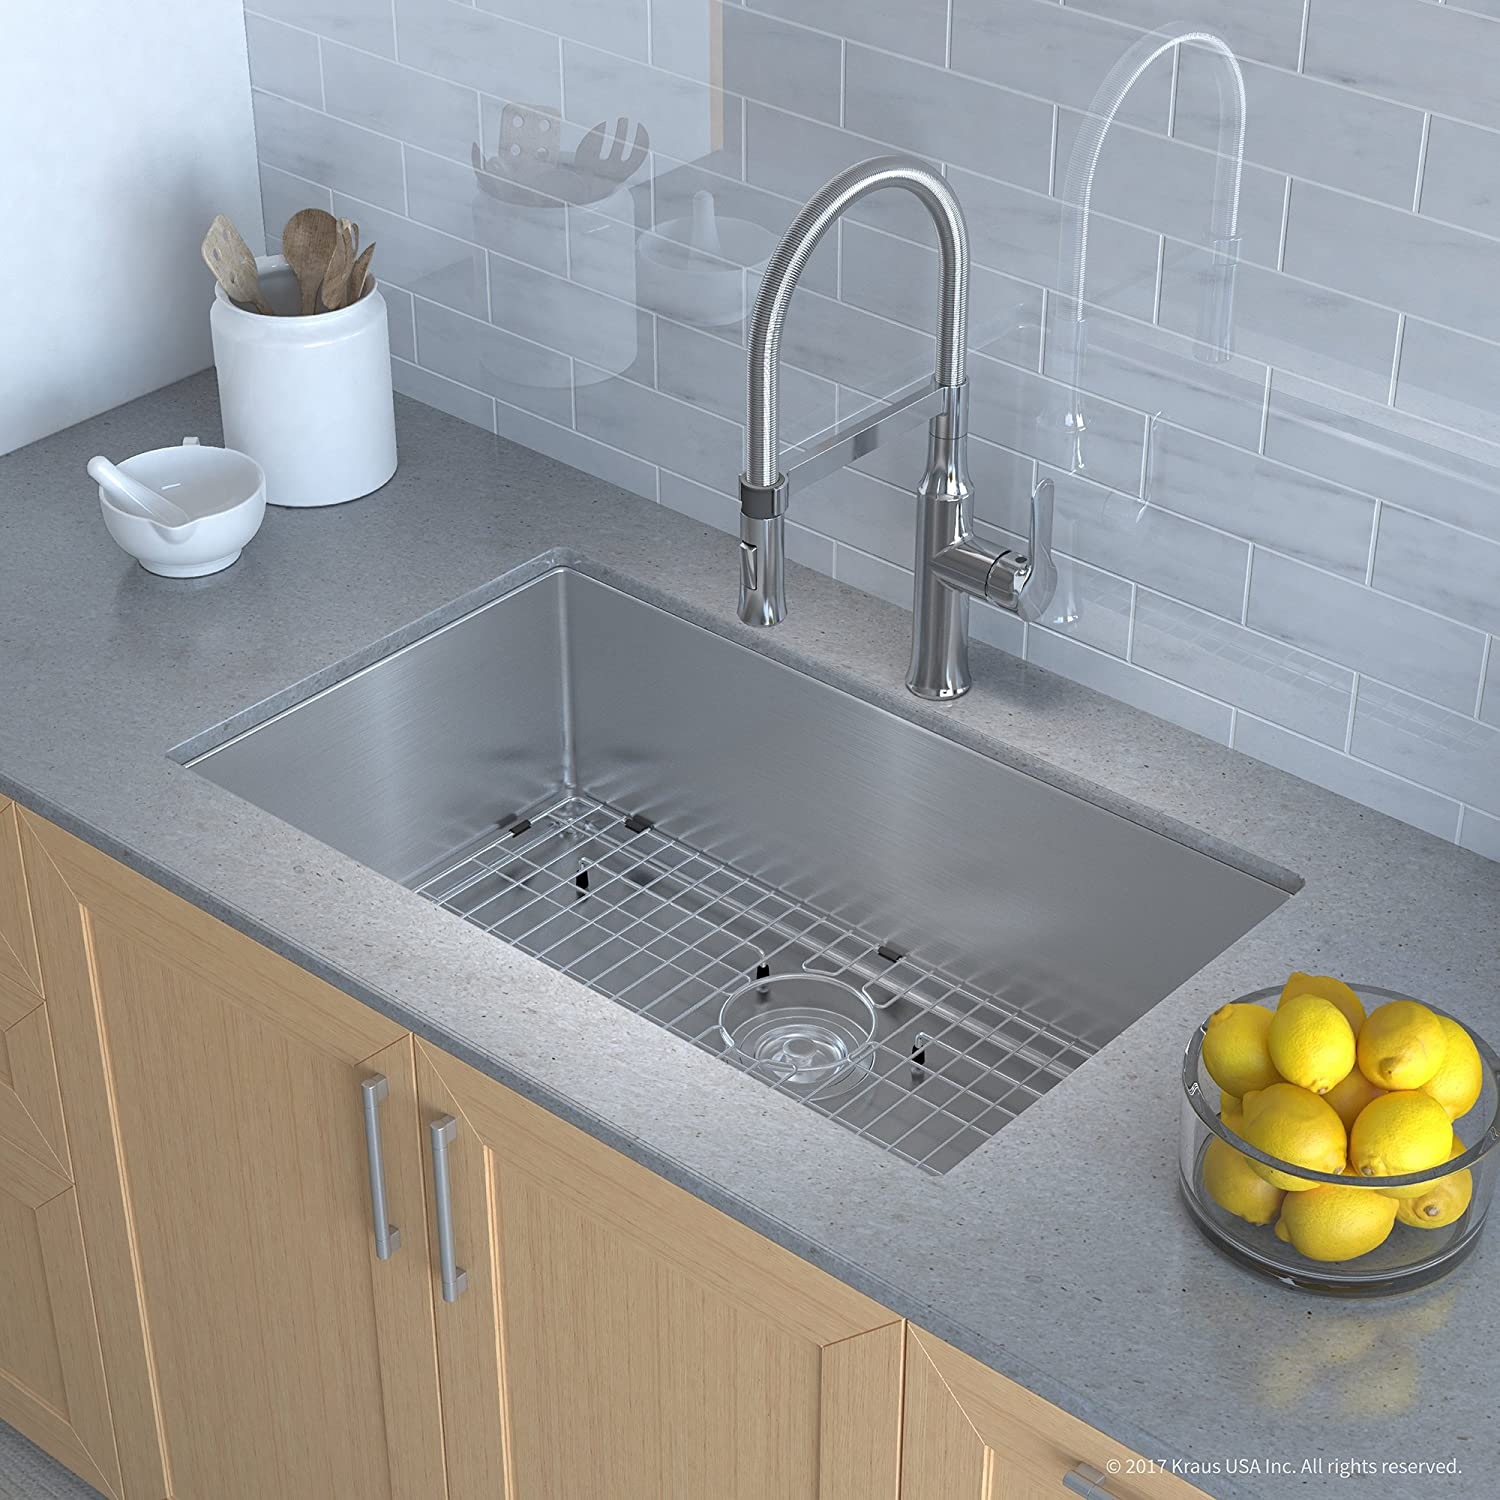 Terrific Kraus Khu100 32 1640 42Ch Combo With Handmade Undermount Stainless Steel 32 Bowl 16 Gauge Sink And Nola Single Handle Flex Commercial Kitchen Faucet Download Free Architecture Designs Sospemadebymaigaardcom